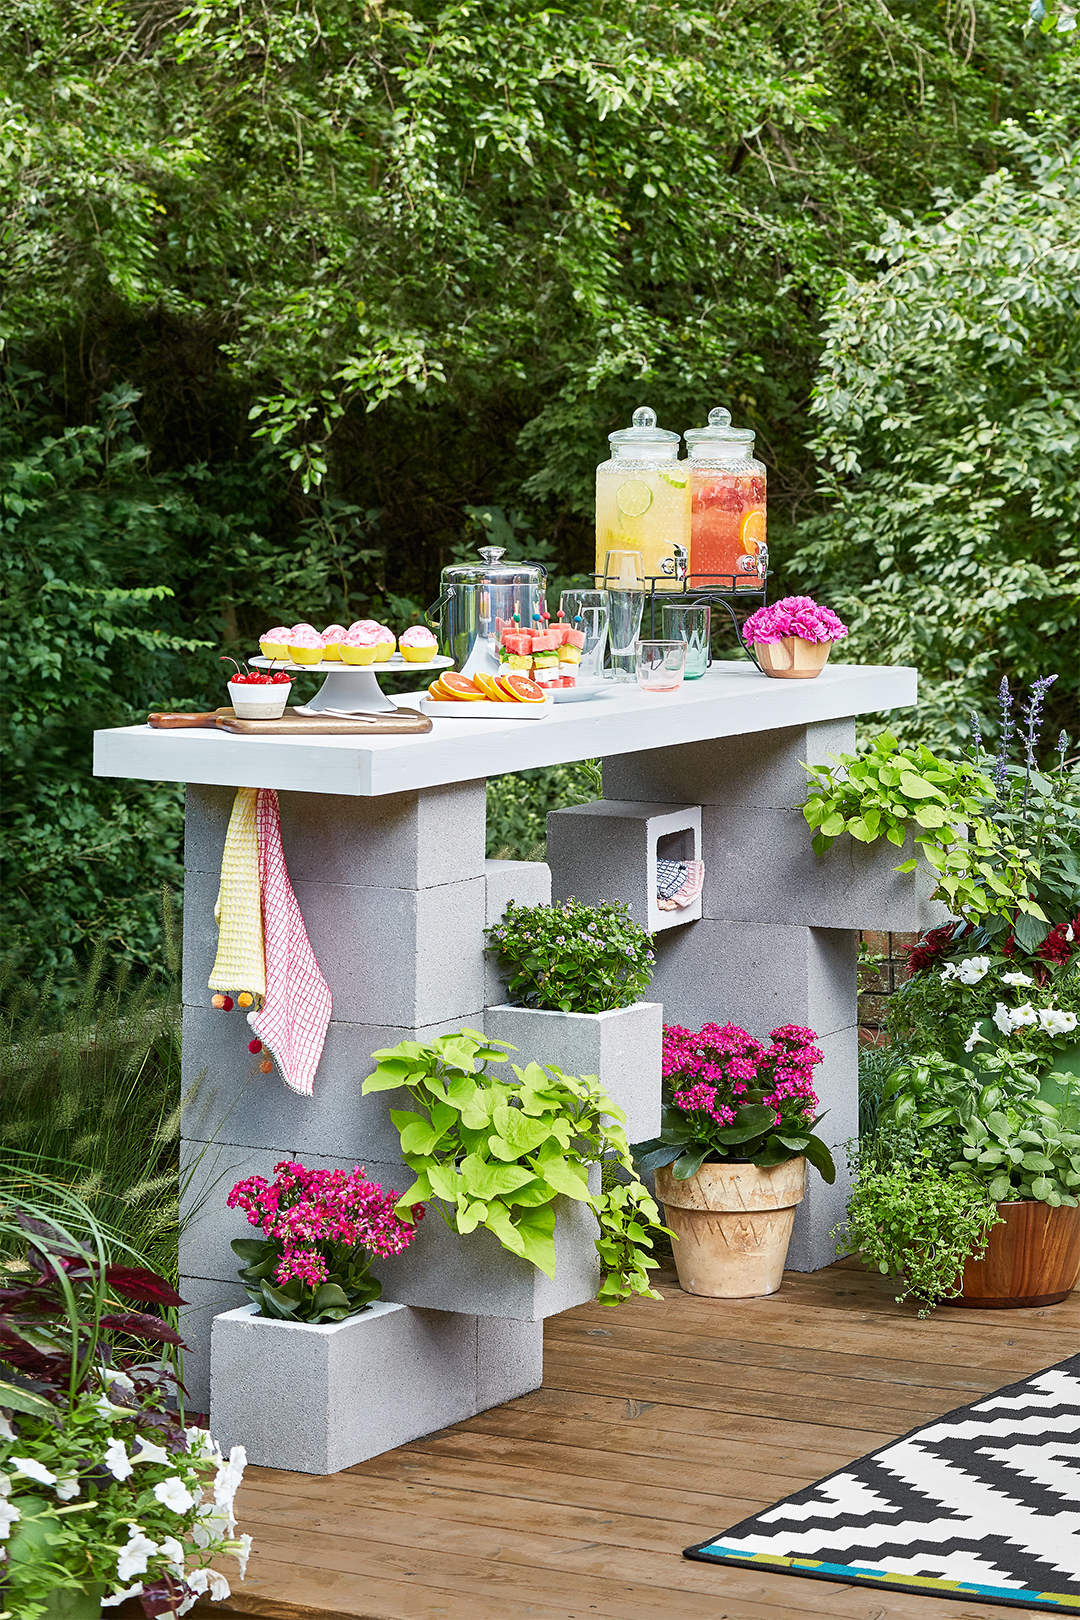 completed concrete block bar with buffet of fruit lemonade and desserts